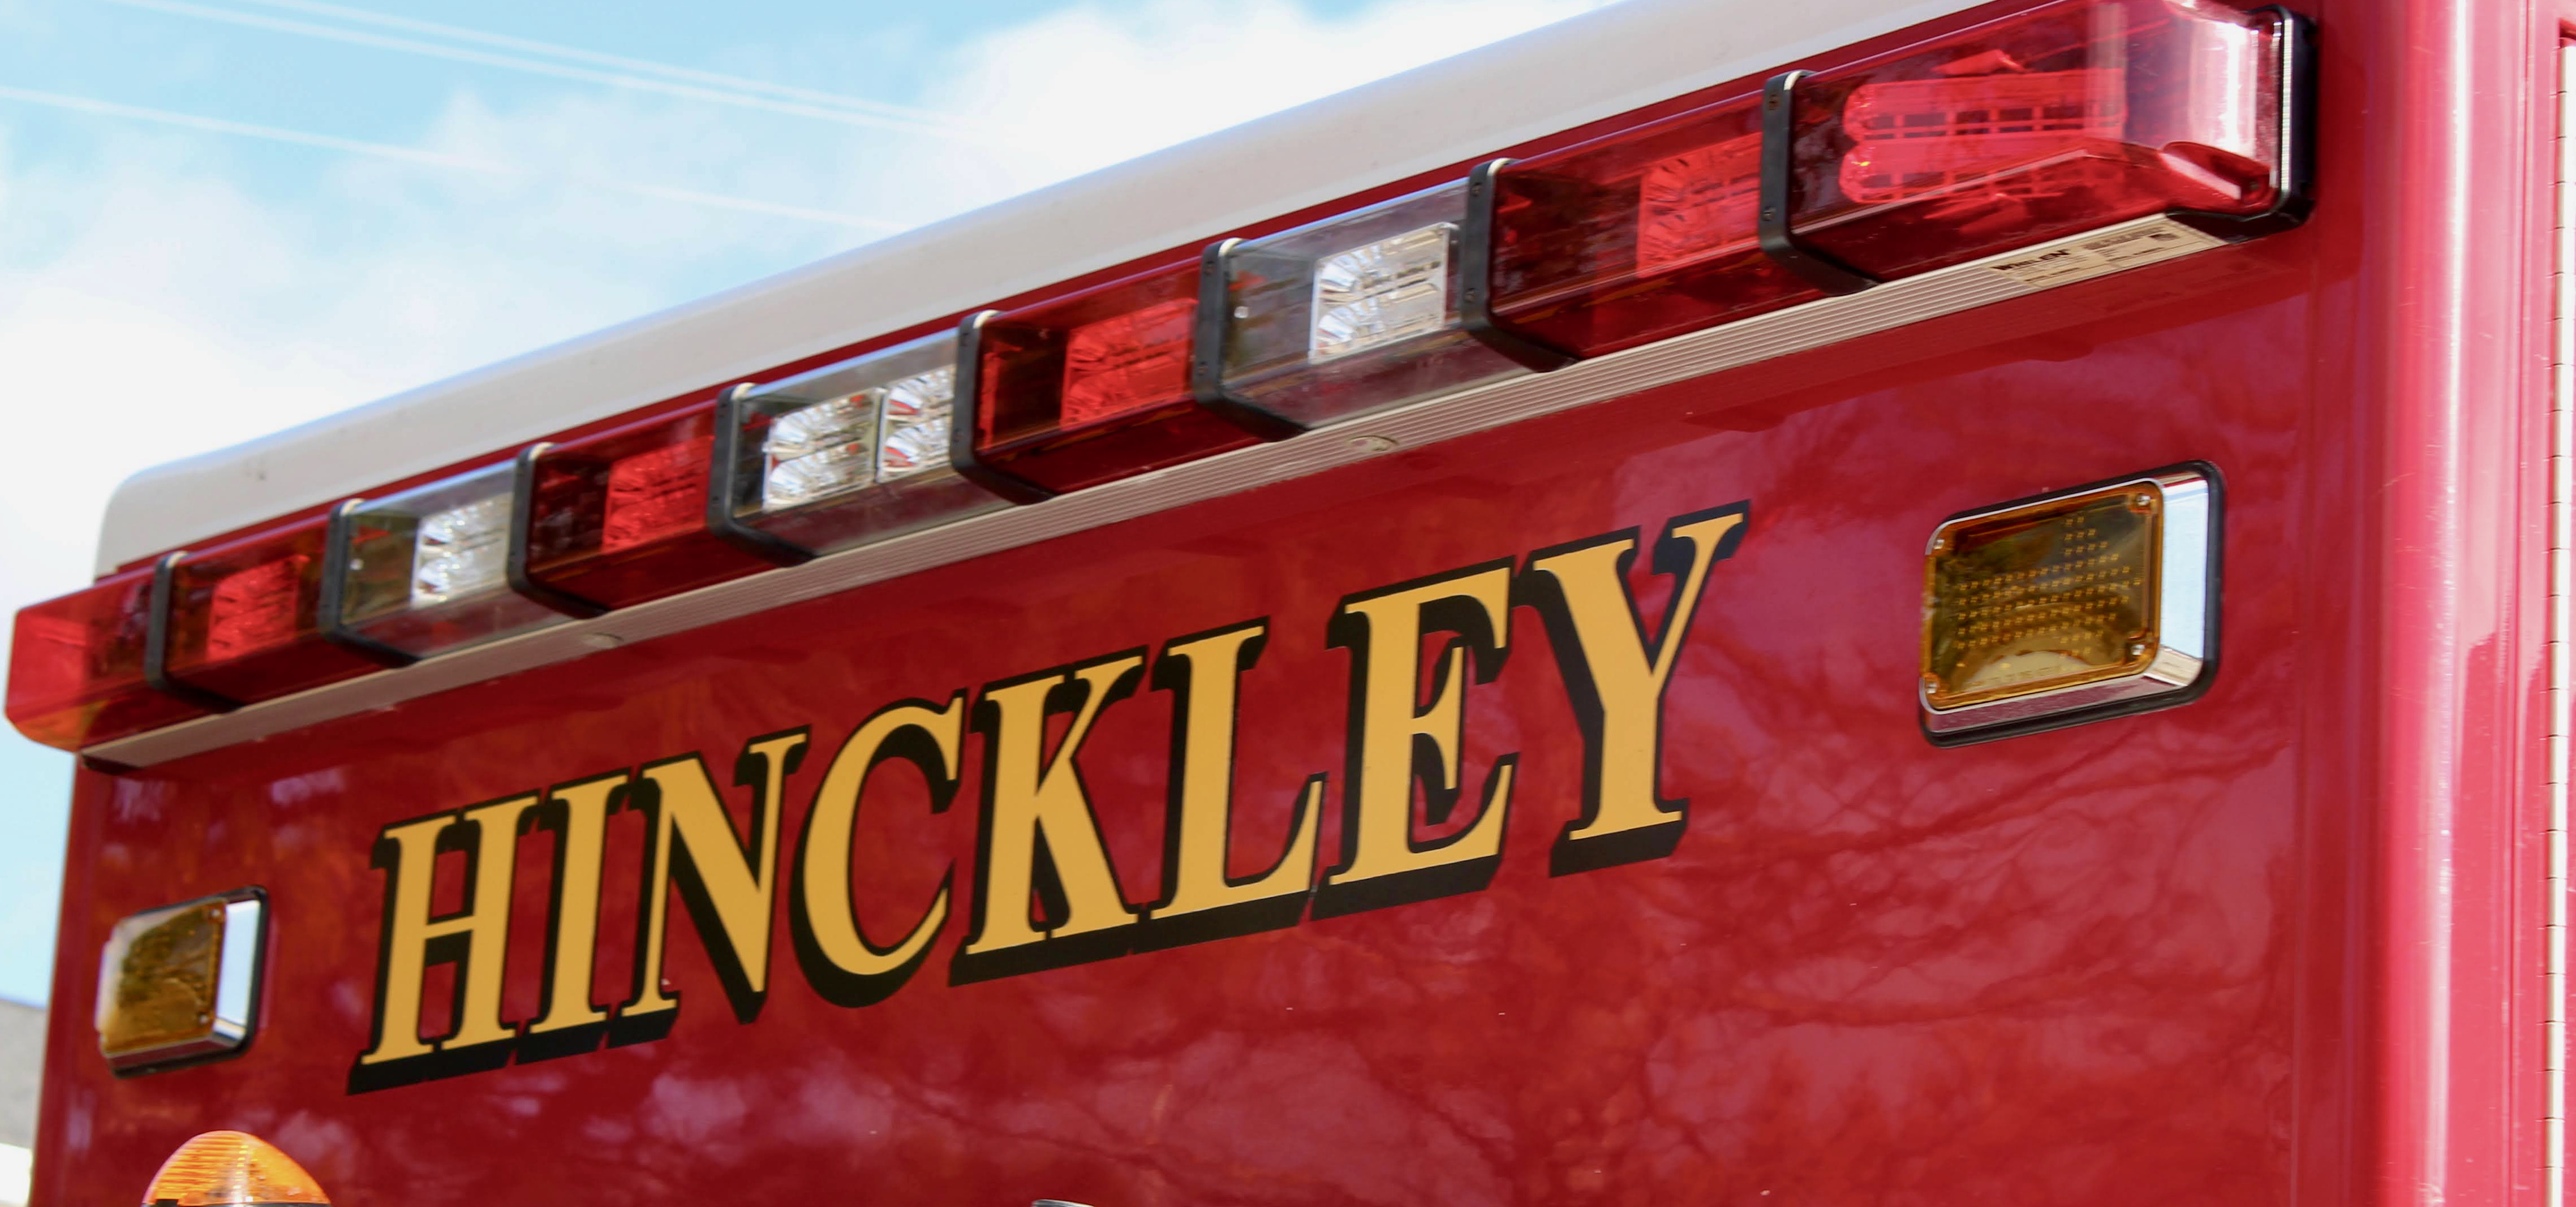 Hinckley Township Department of Fire and Rescue